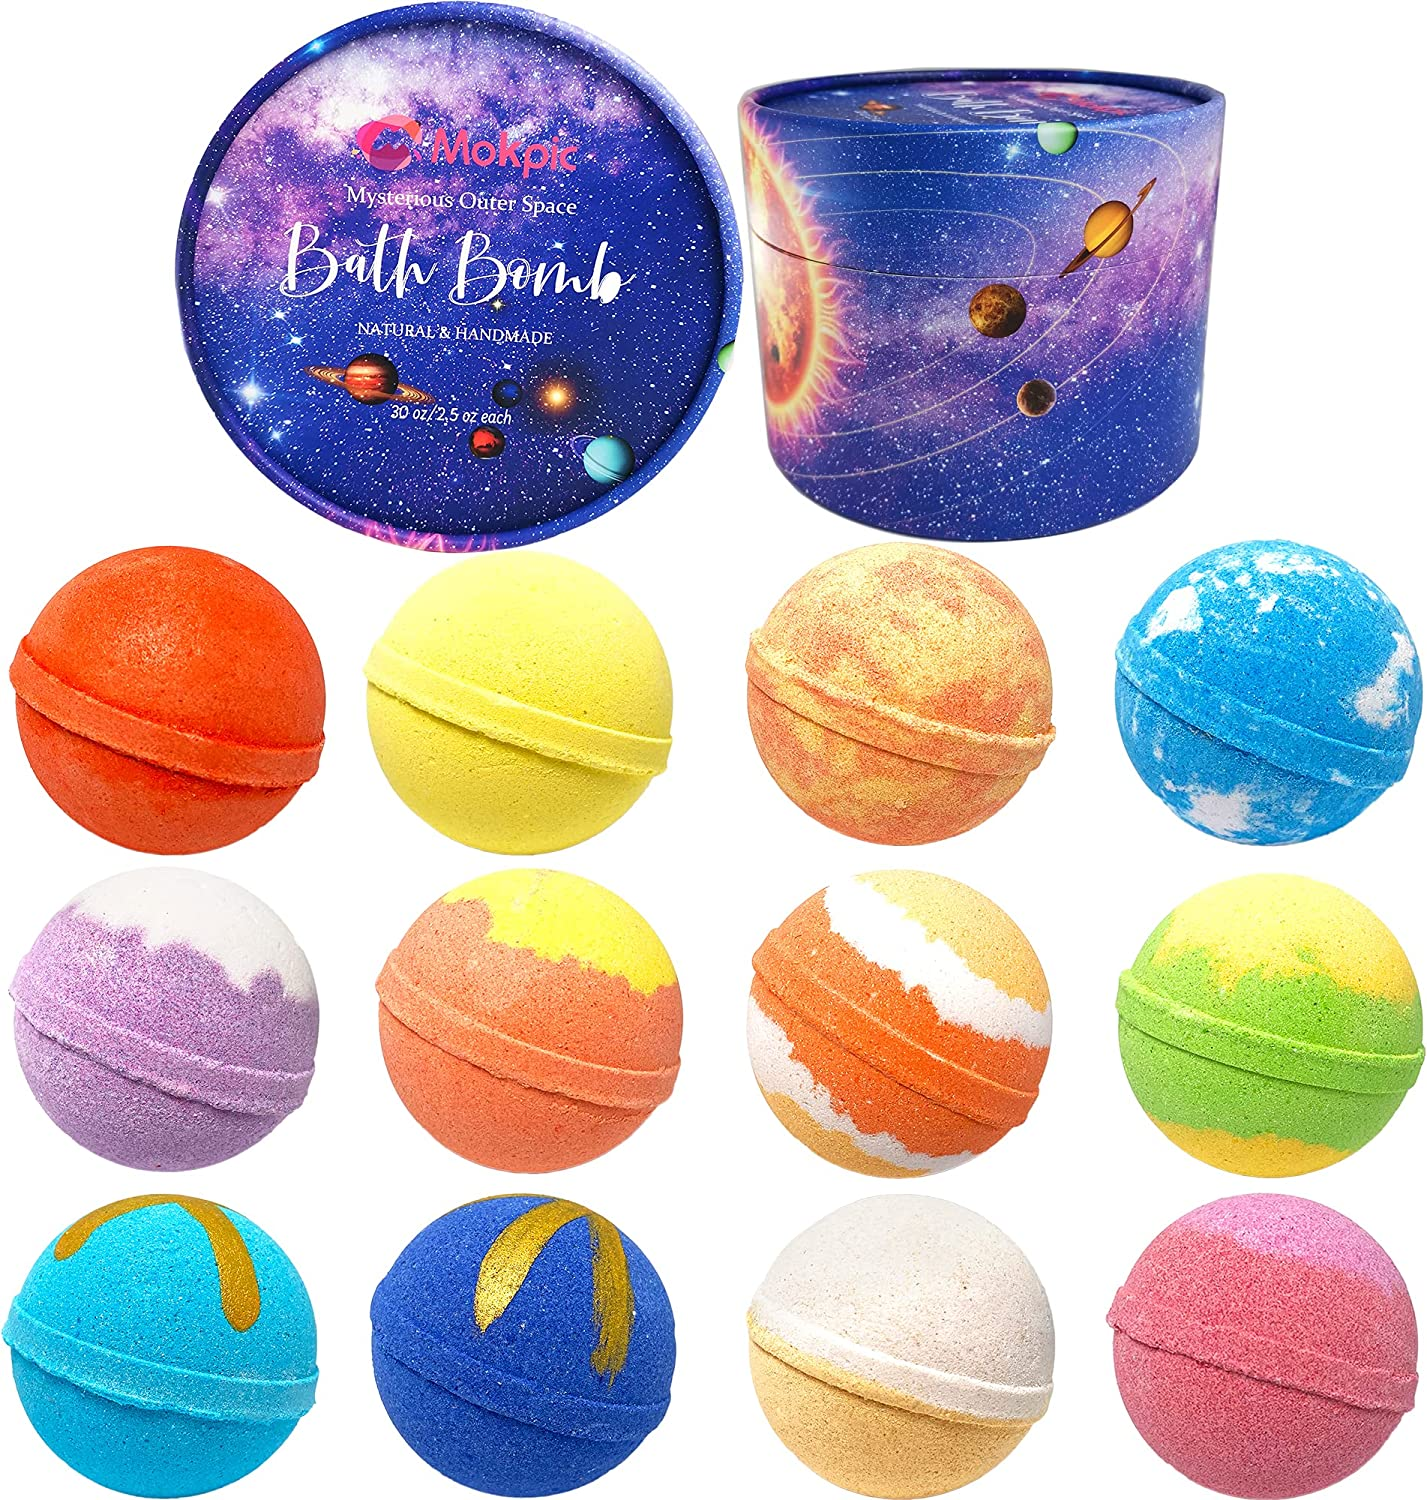 MOKPIC Bath low-pricing Bombs 12 Pack Solar Gift System Bomb Planets Finally popular brand S